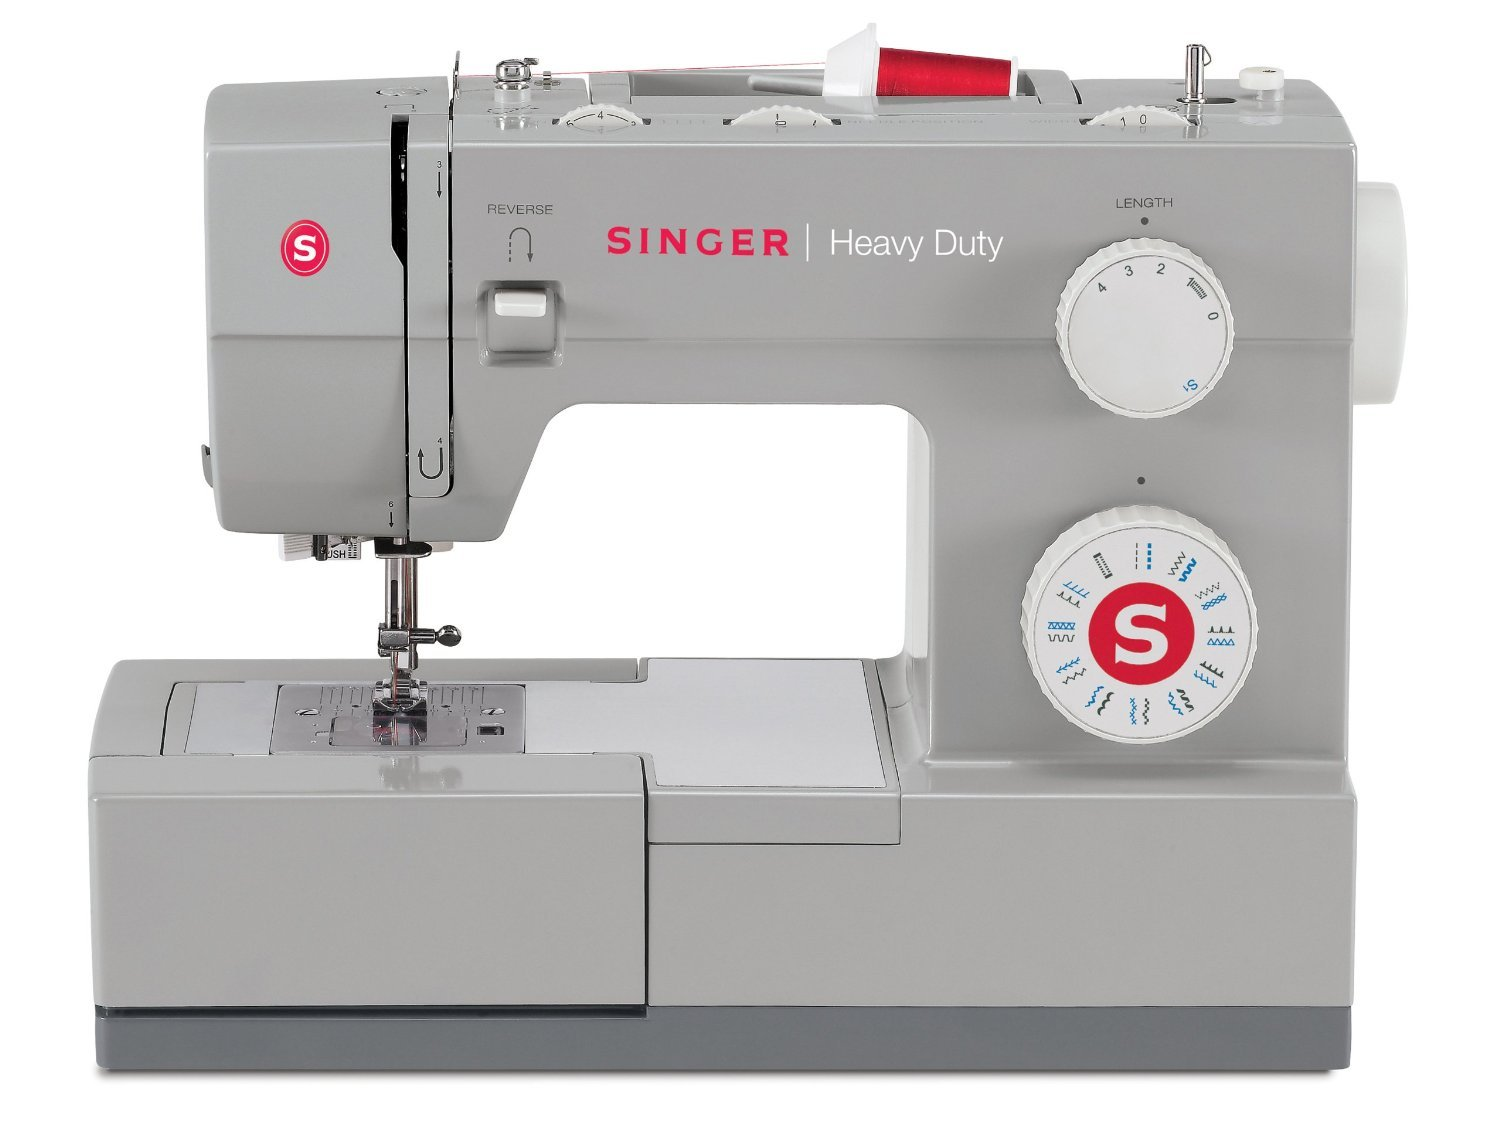 SINGER | Heavy Duty 4423 Sewing Machine with 23 Built-In Stitches -12 Decorative Stitches, 60% Stronger Motor & Automatic Needle Threader, Perfect for Sewing all Types of Fabrics with Ease by SINGER